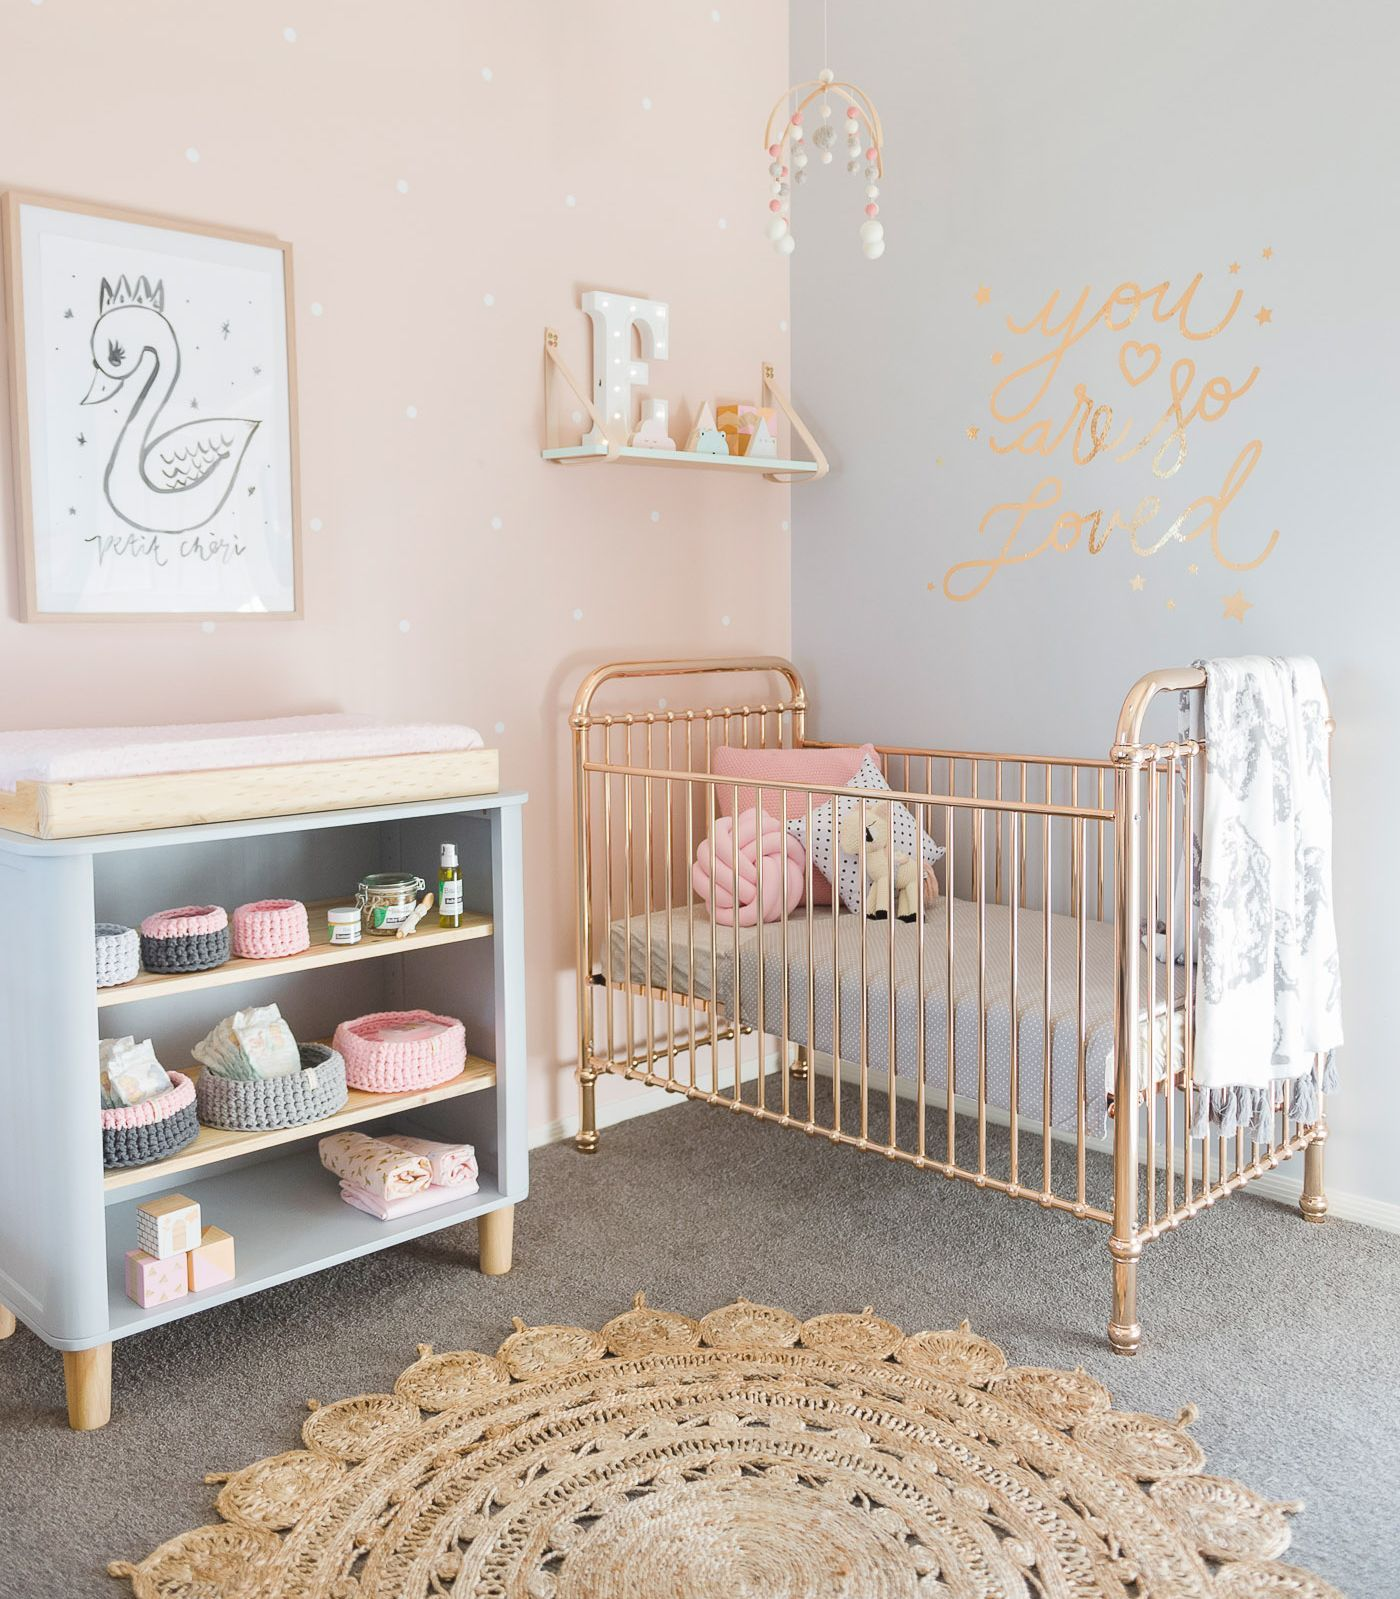 5 of the most prettiest cribs | Incy Interiors Ellie rose gold crib |  gomommygo.